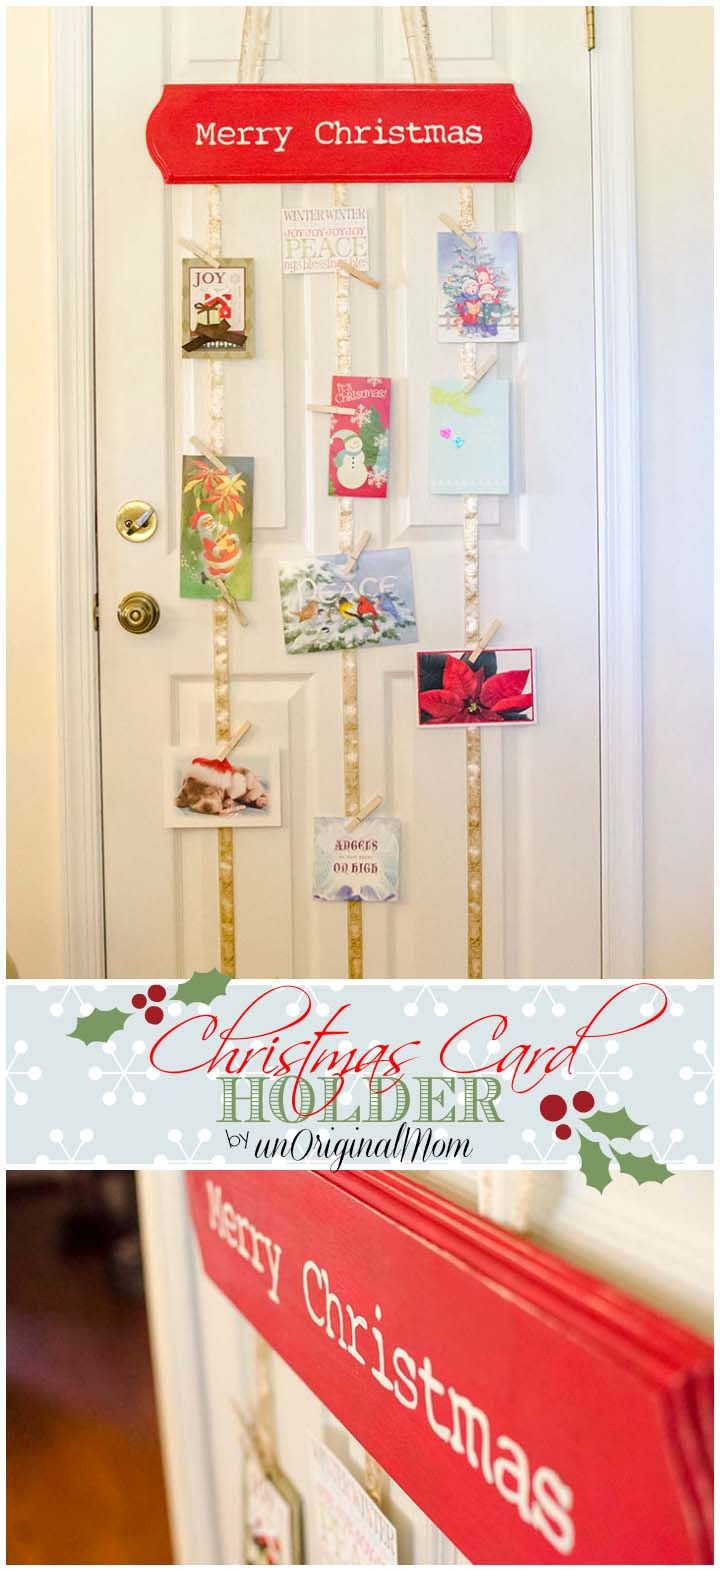 Best ideas about christmas card holders on pinterest